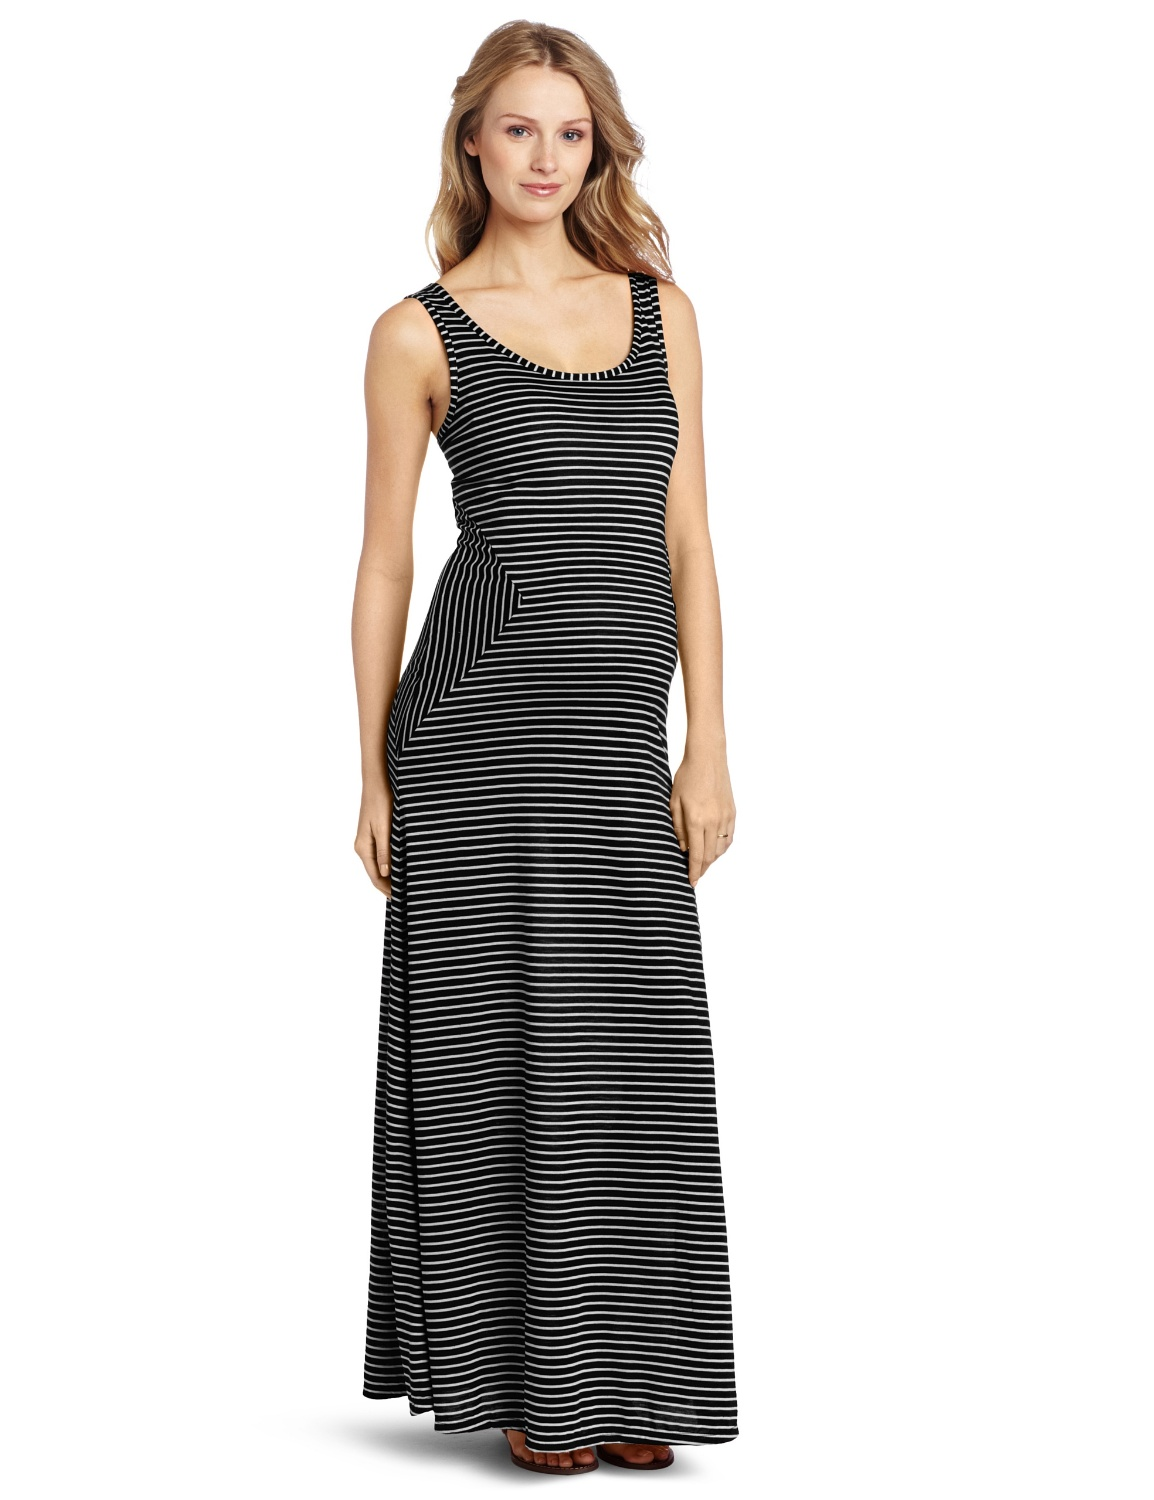 Long maternity dresses provide the perfect way for expecting mothers to flatter curves while staying stylish – and we have maxis for every occasion and every stage of pregnancy.